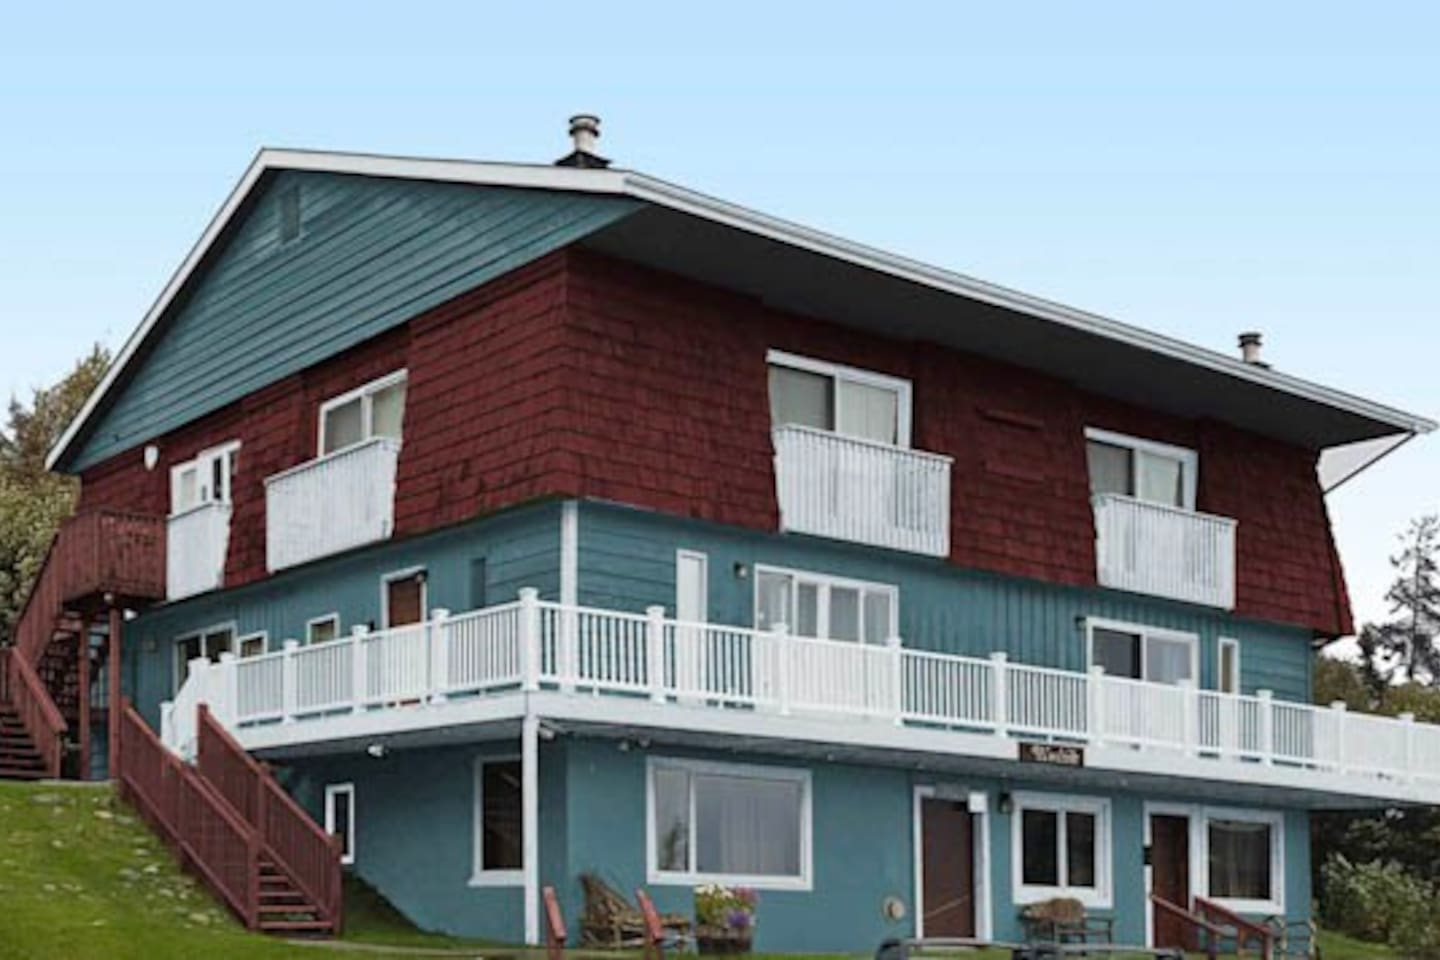 Modest lodging in the heart of downtown Homer